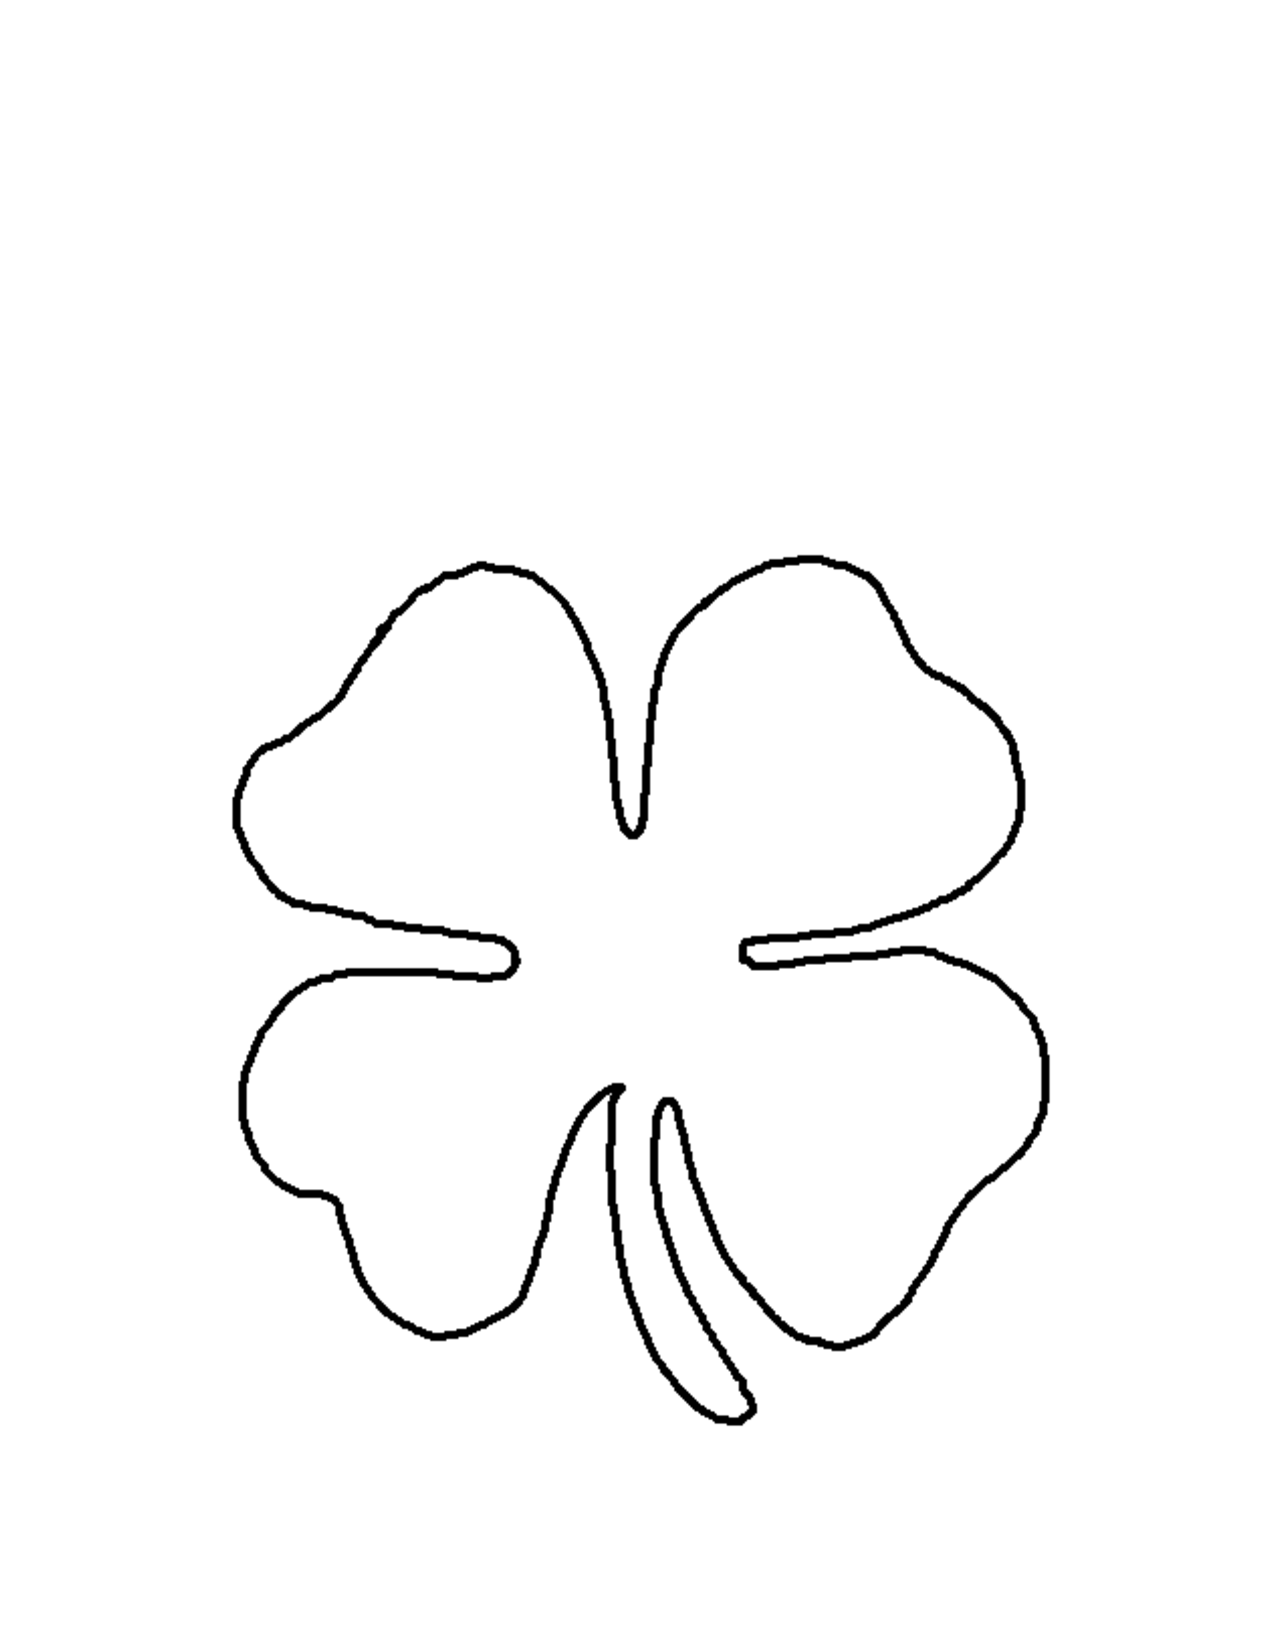 20+ Outline Shamrock Tattoos